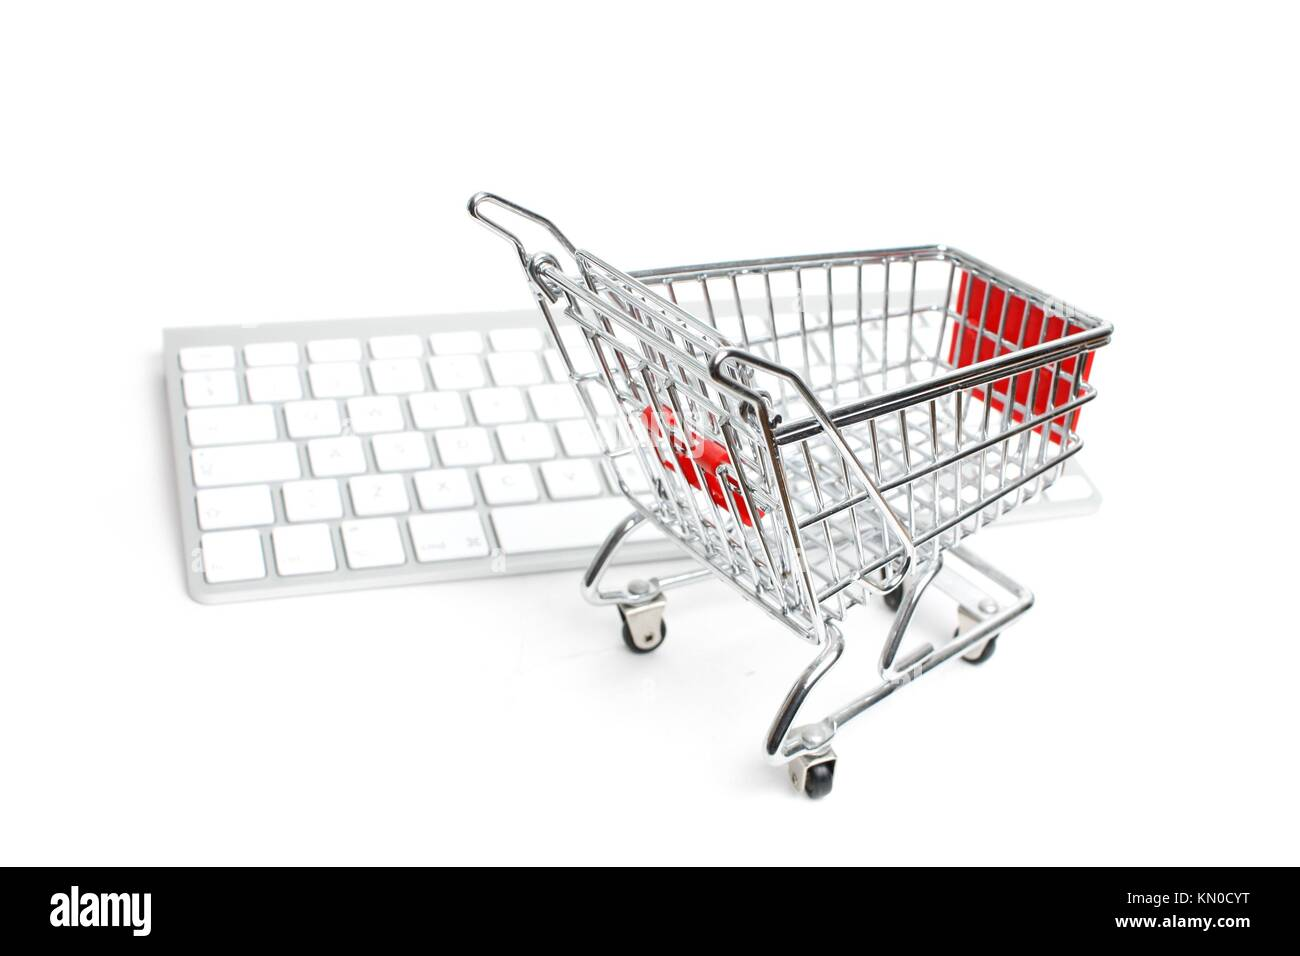 Online shopping illustrated conceptually - Stock Image